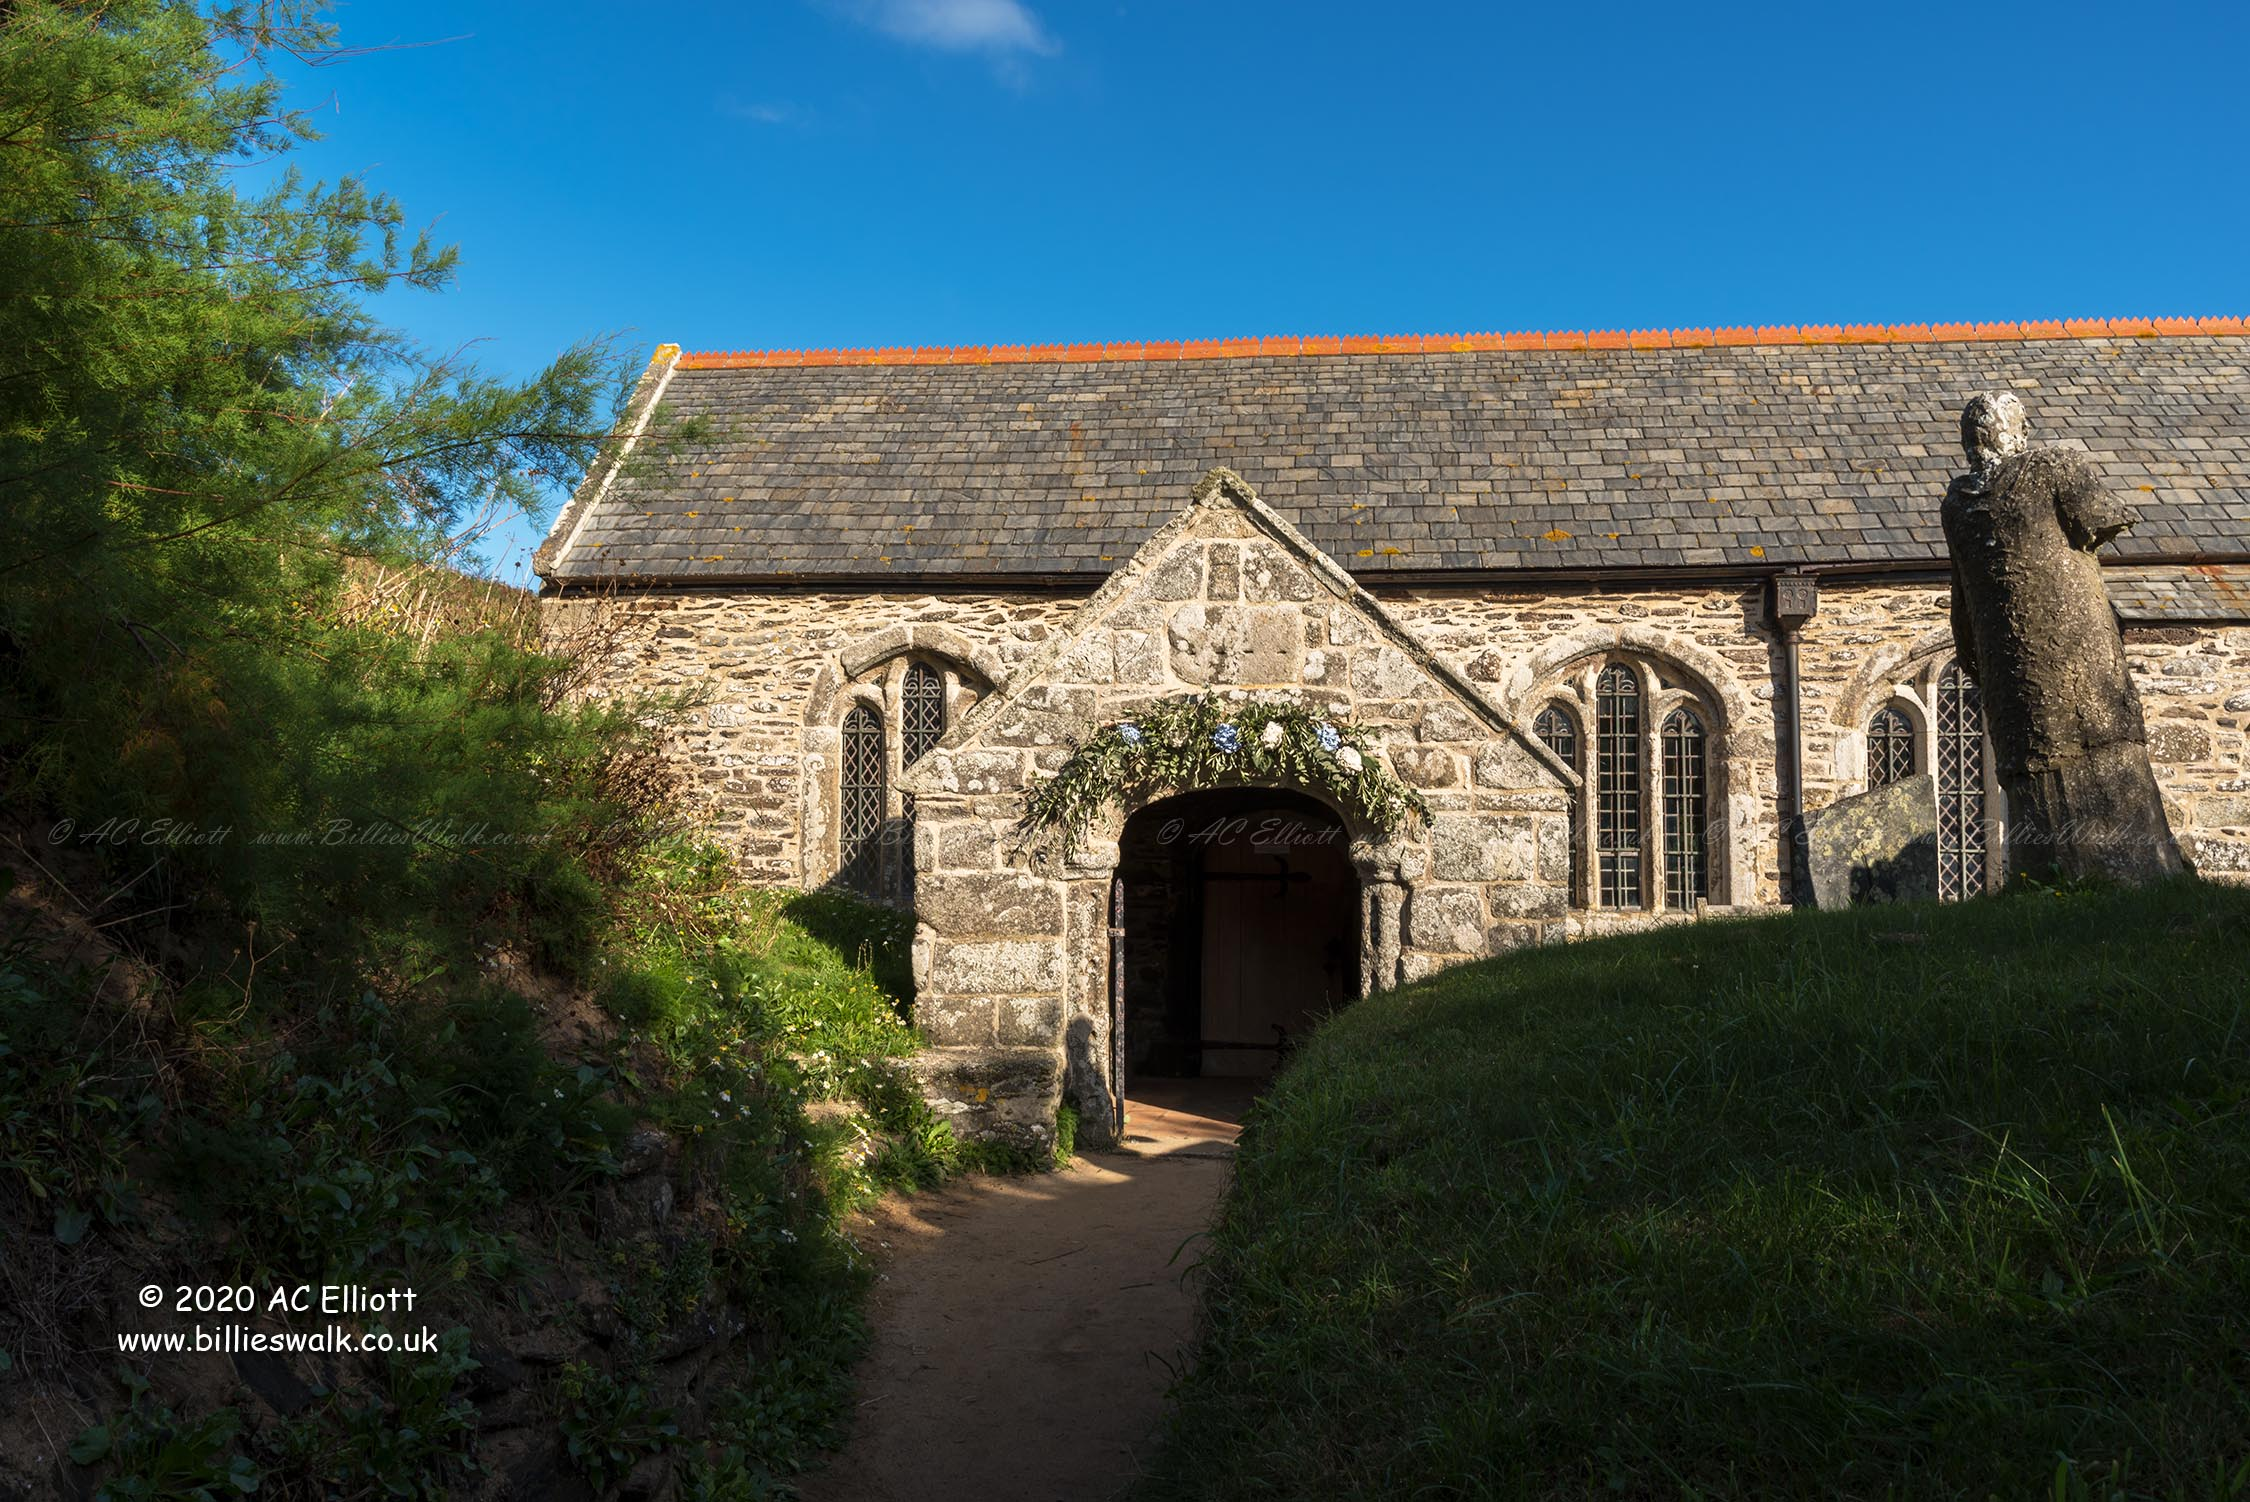 St Winwaloe, The Church of the Storms